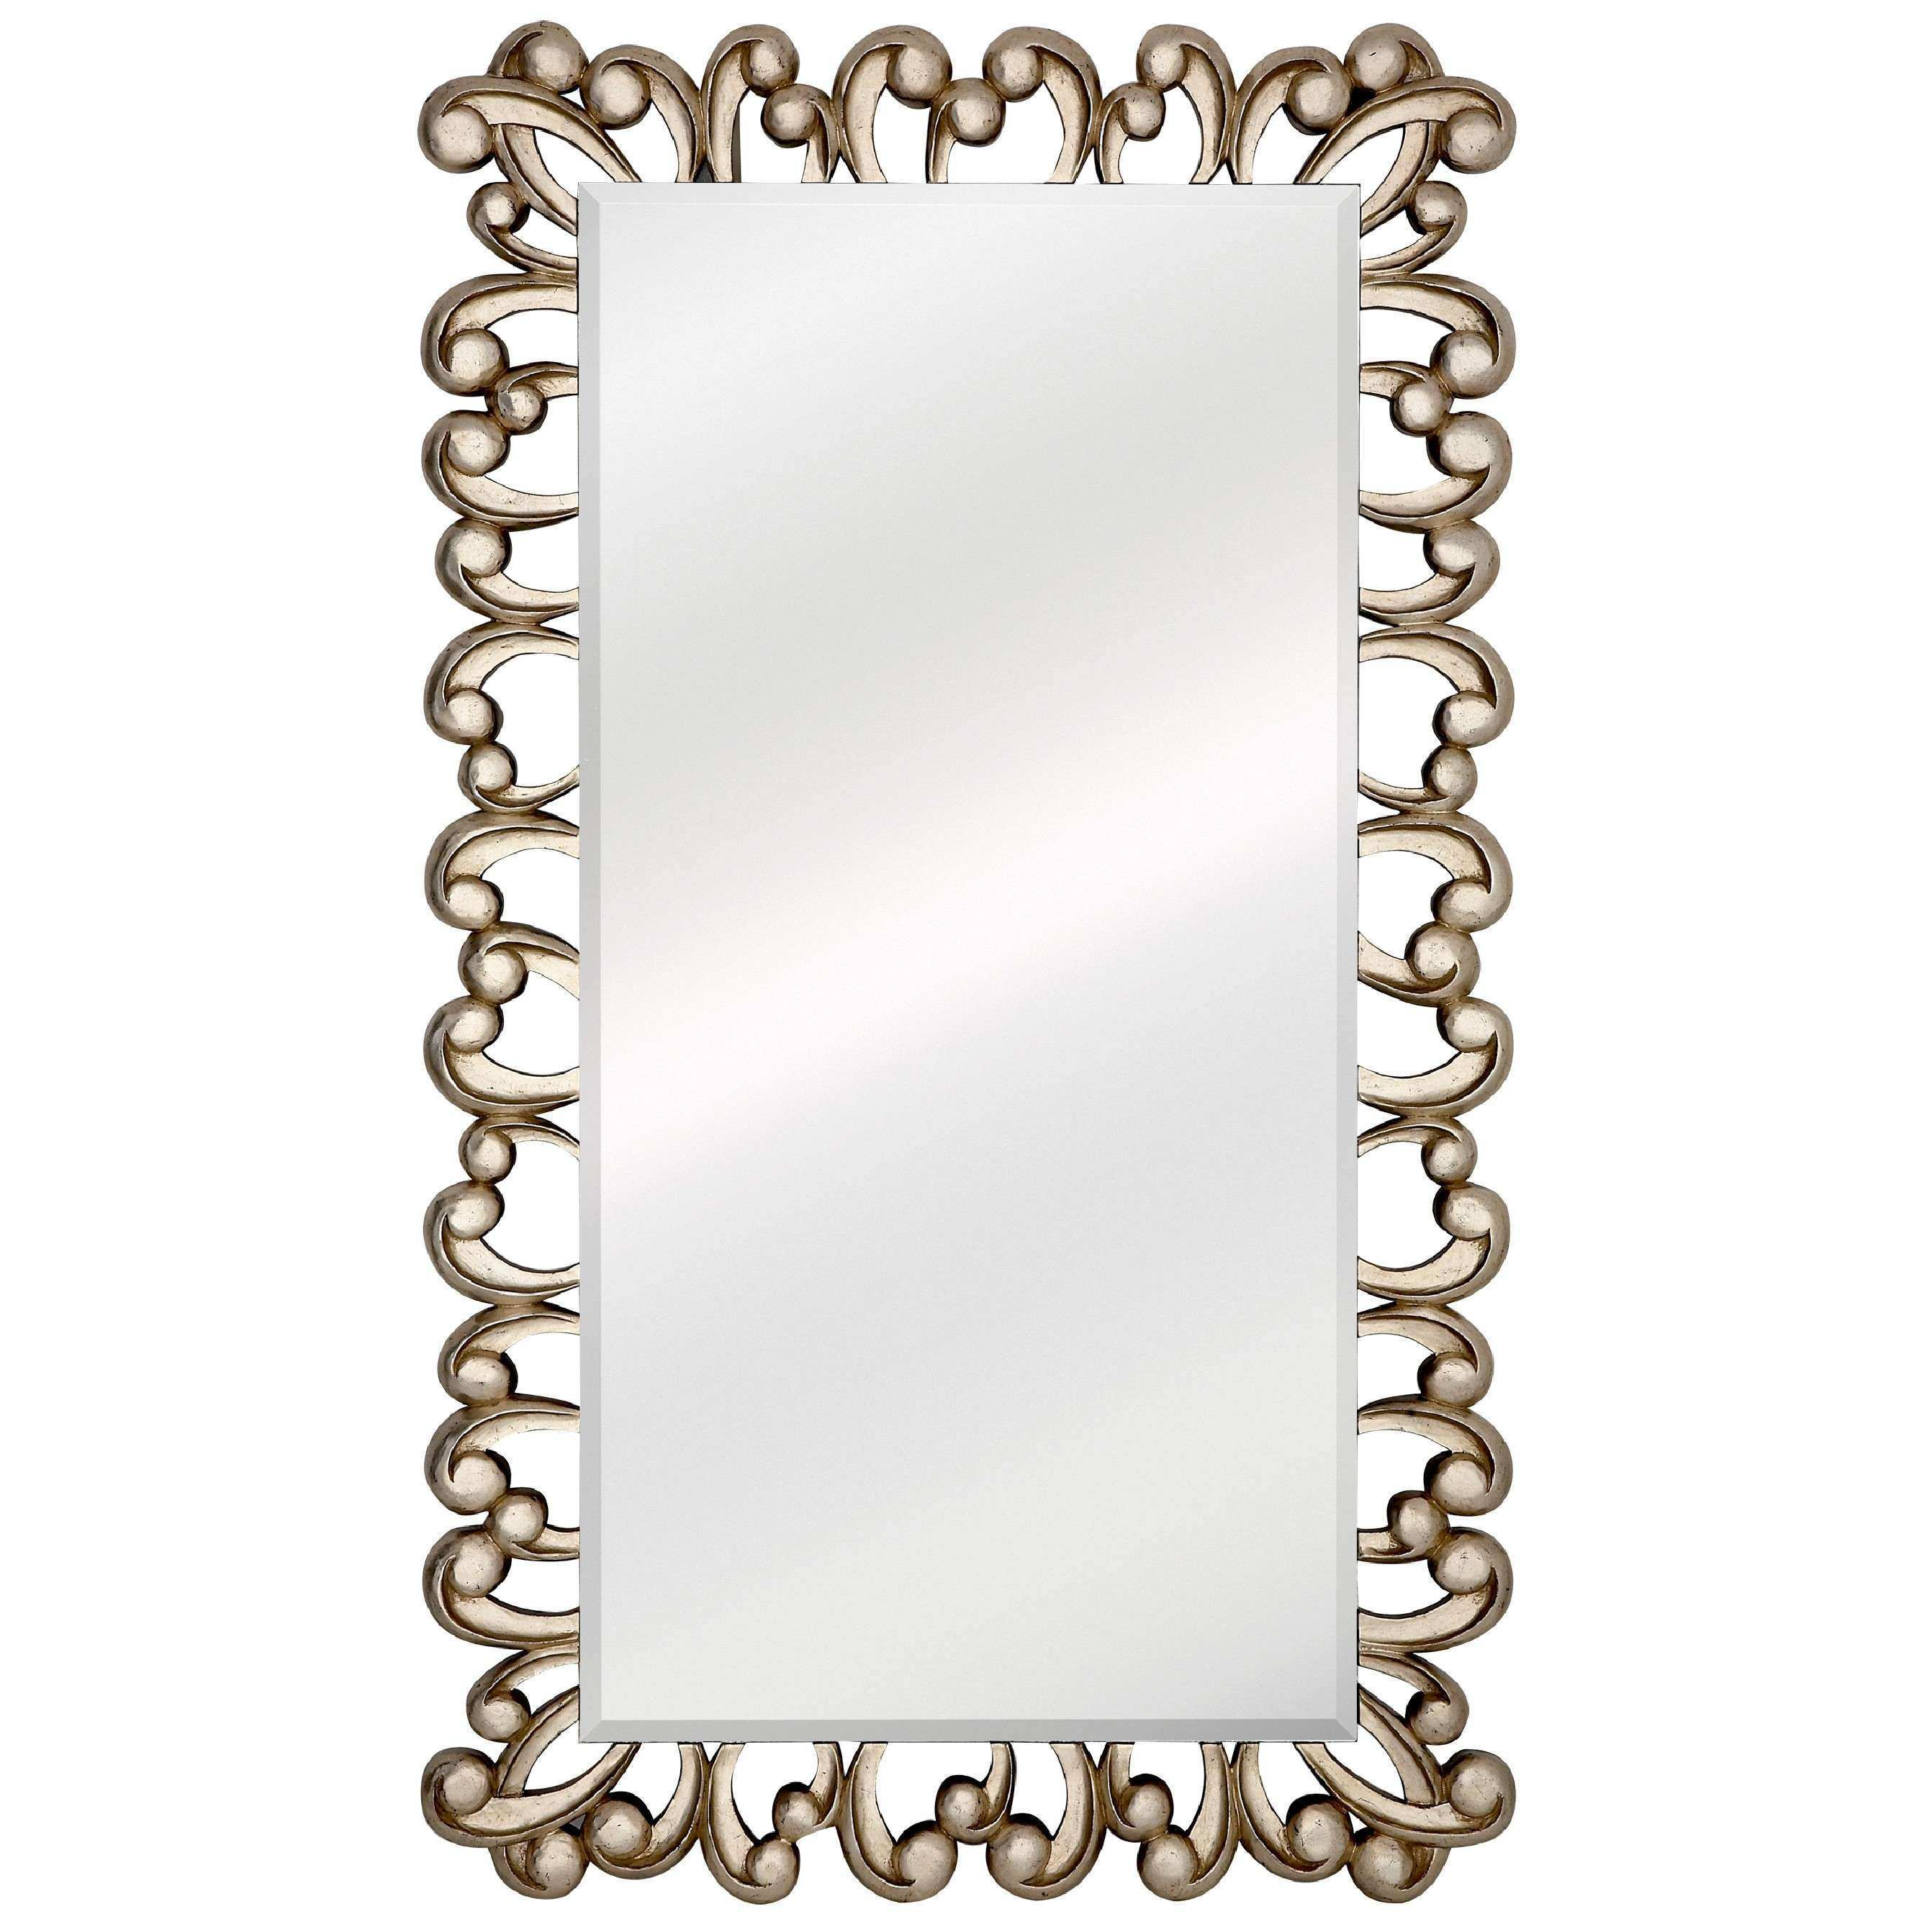 Majestic Mirror Stylish Silver Rectangular Beveled